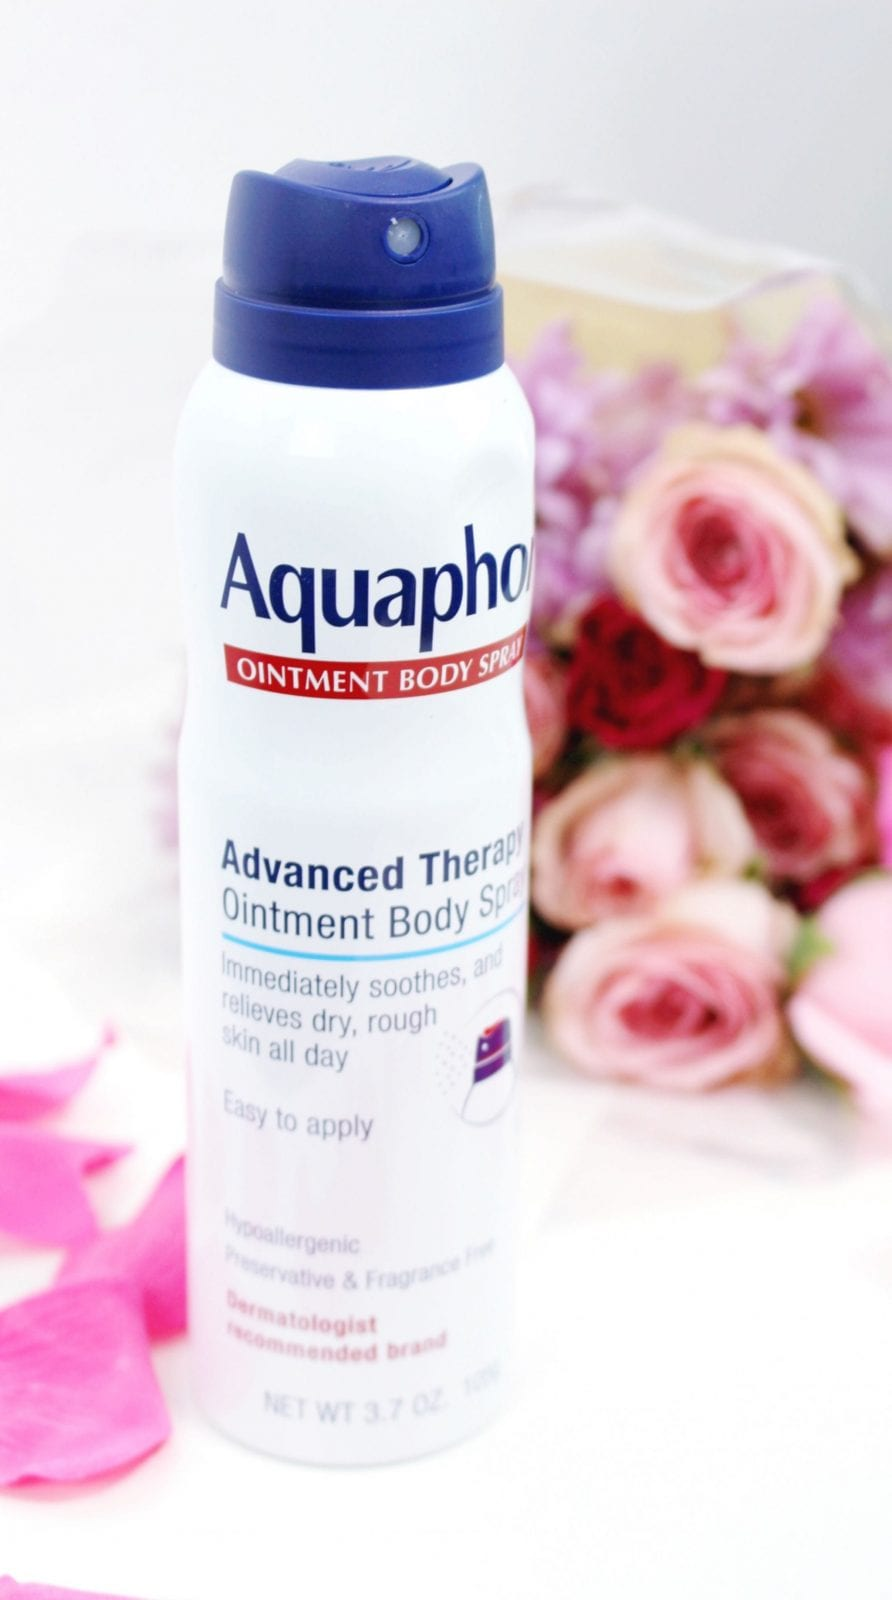 This is a standing close up of the AquaphorⓇ Ointment Body Spray, surrounded by roses.